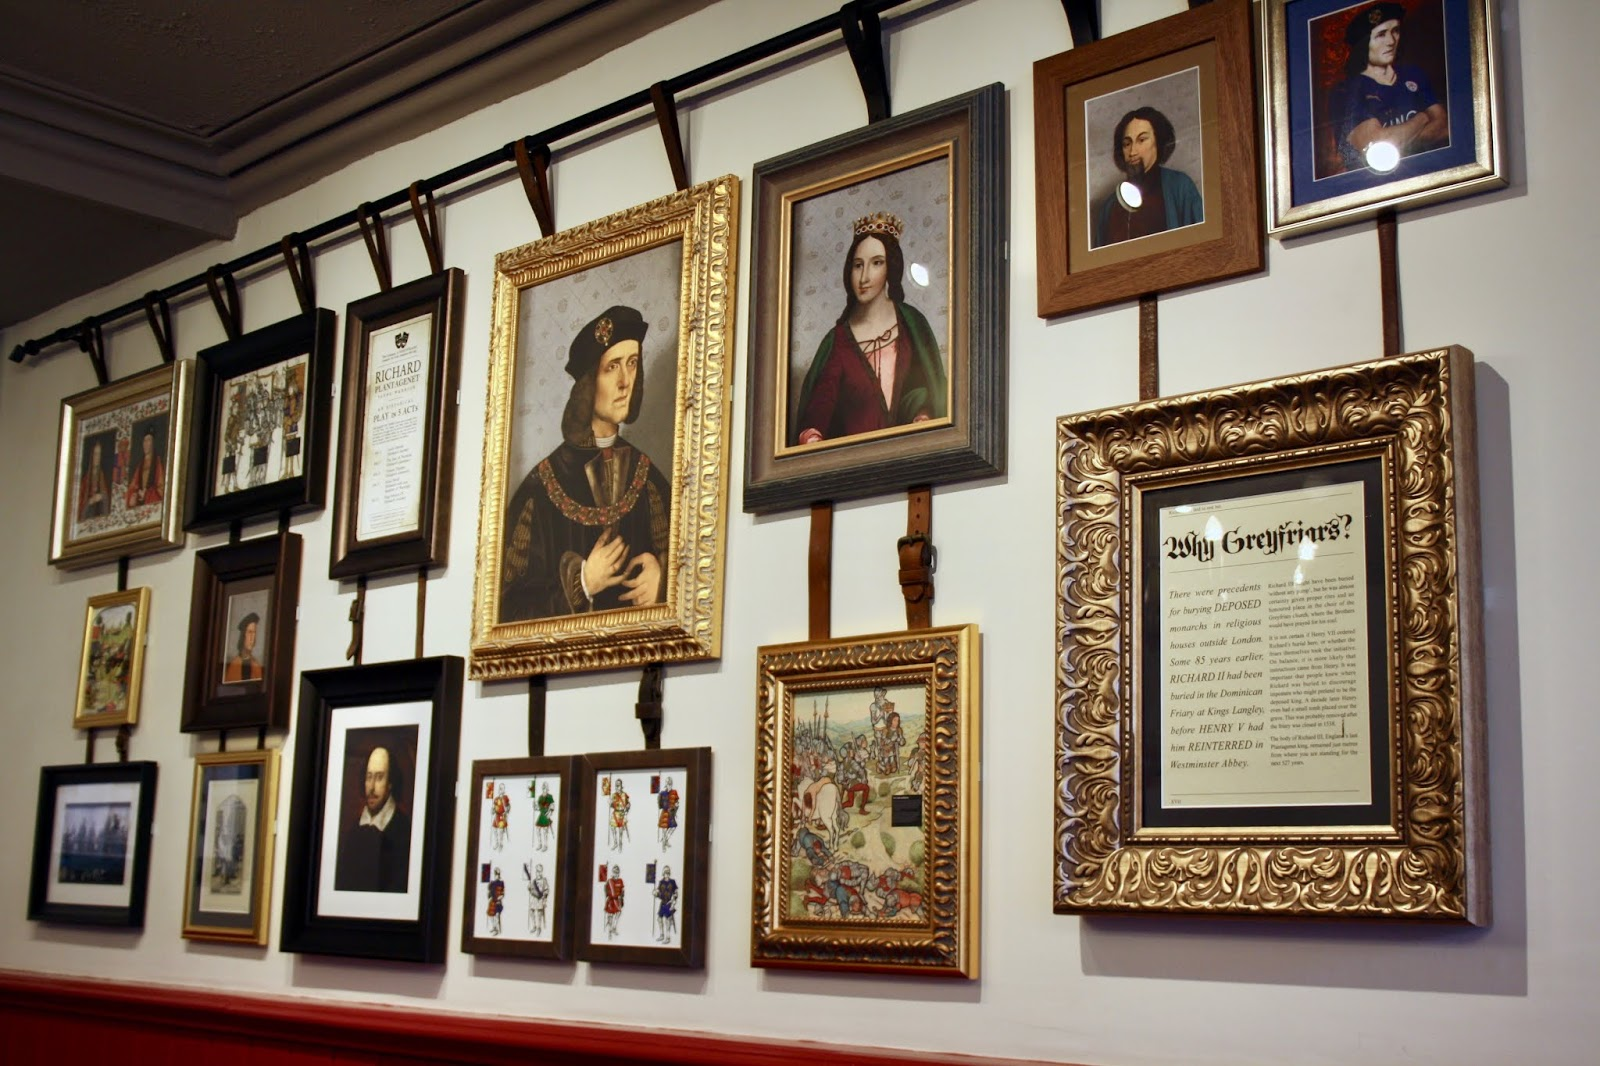 Interior decoration of King Richard III pub, Leicester, featuring pictures of King Richard and Shakespeare